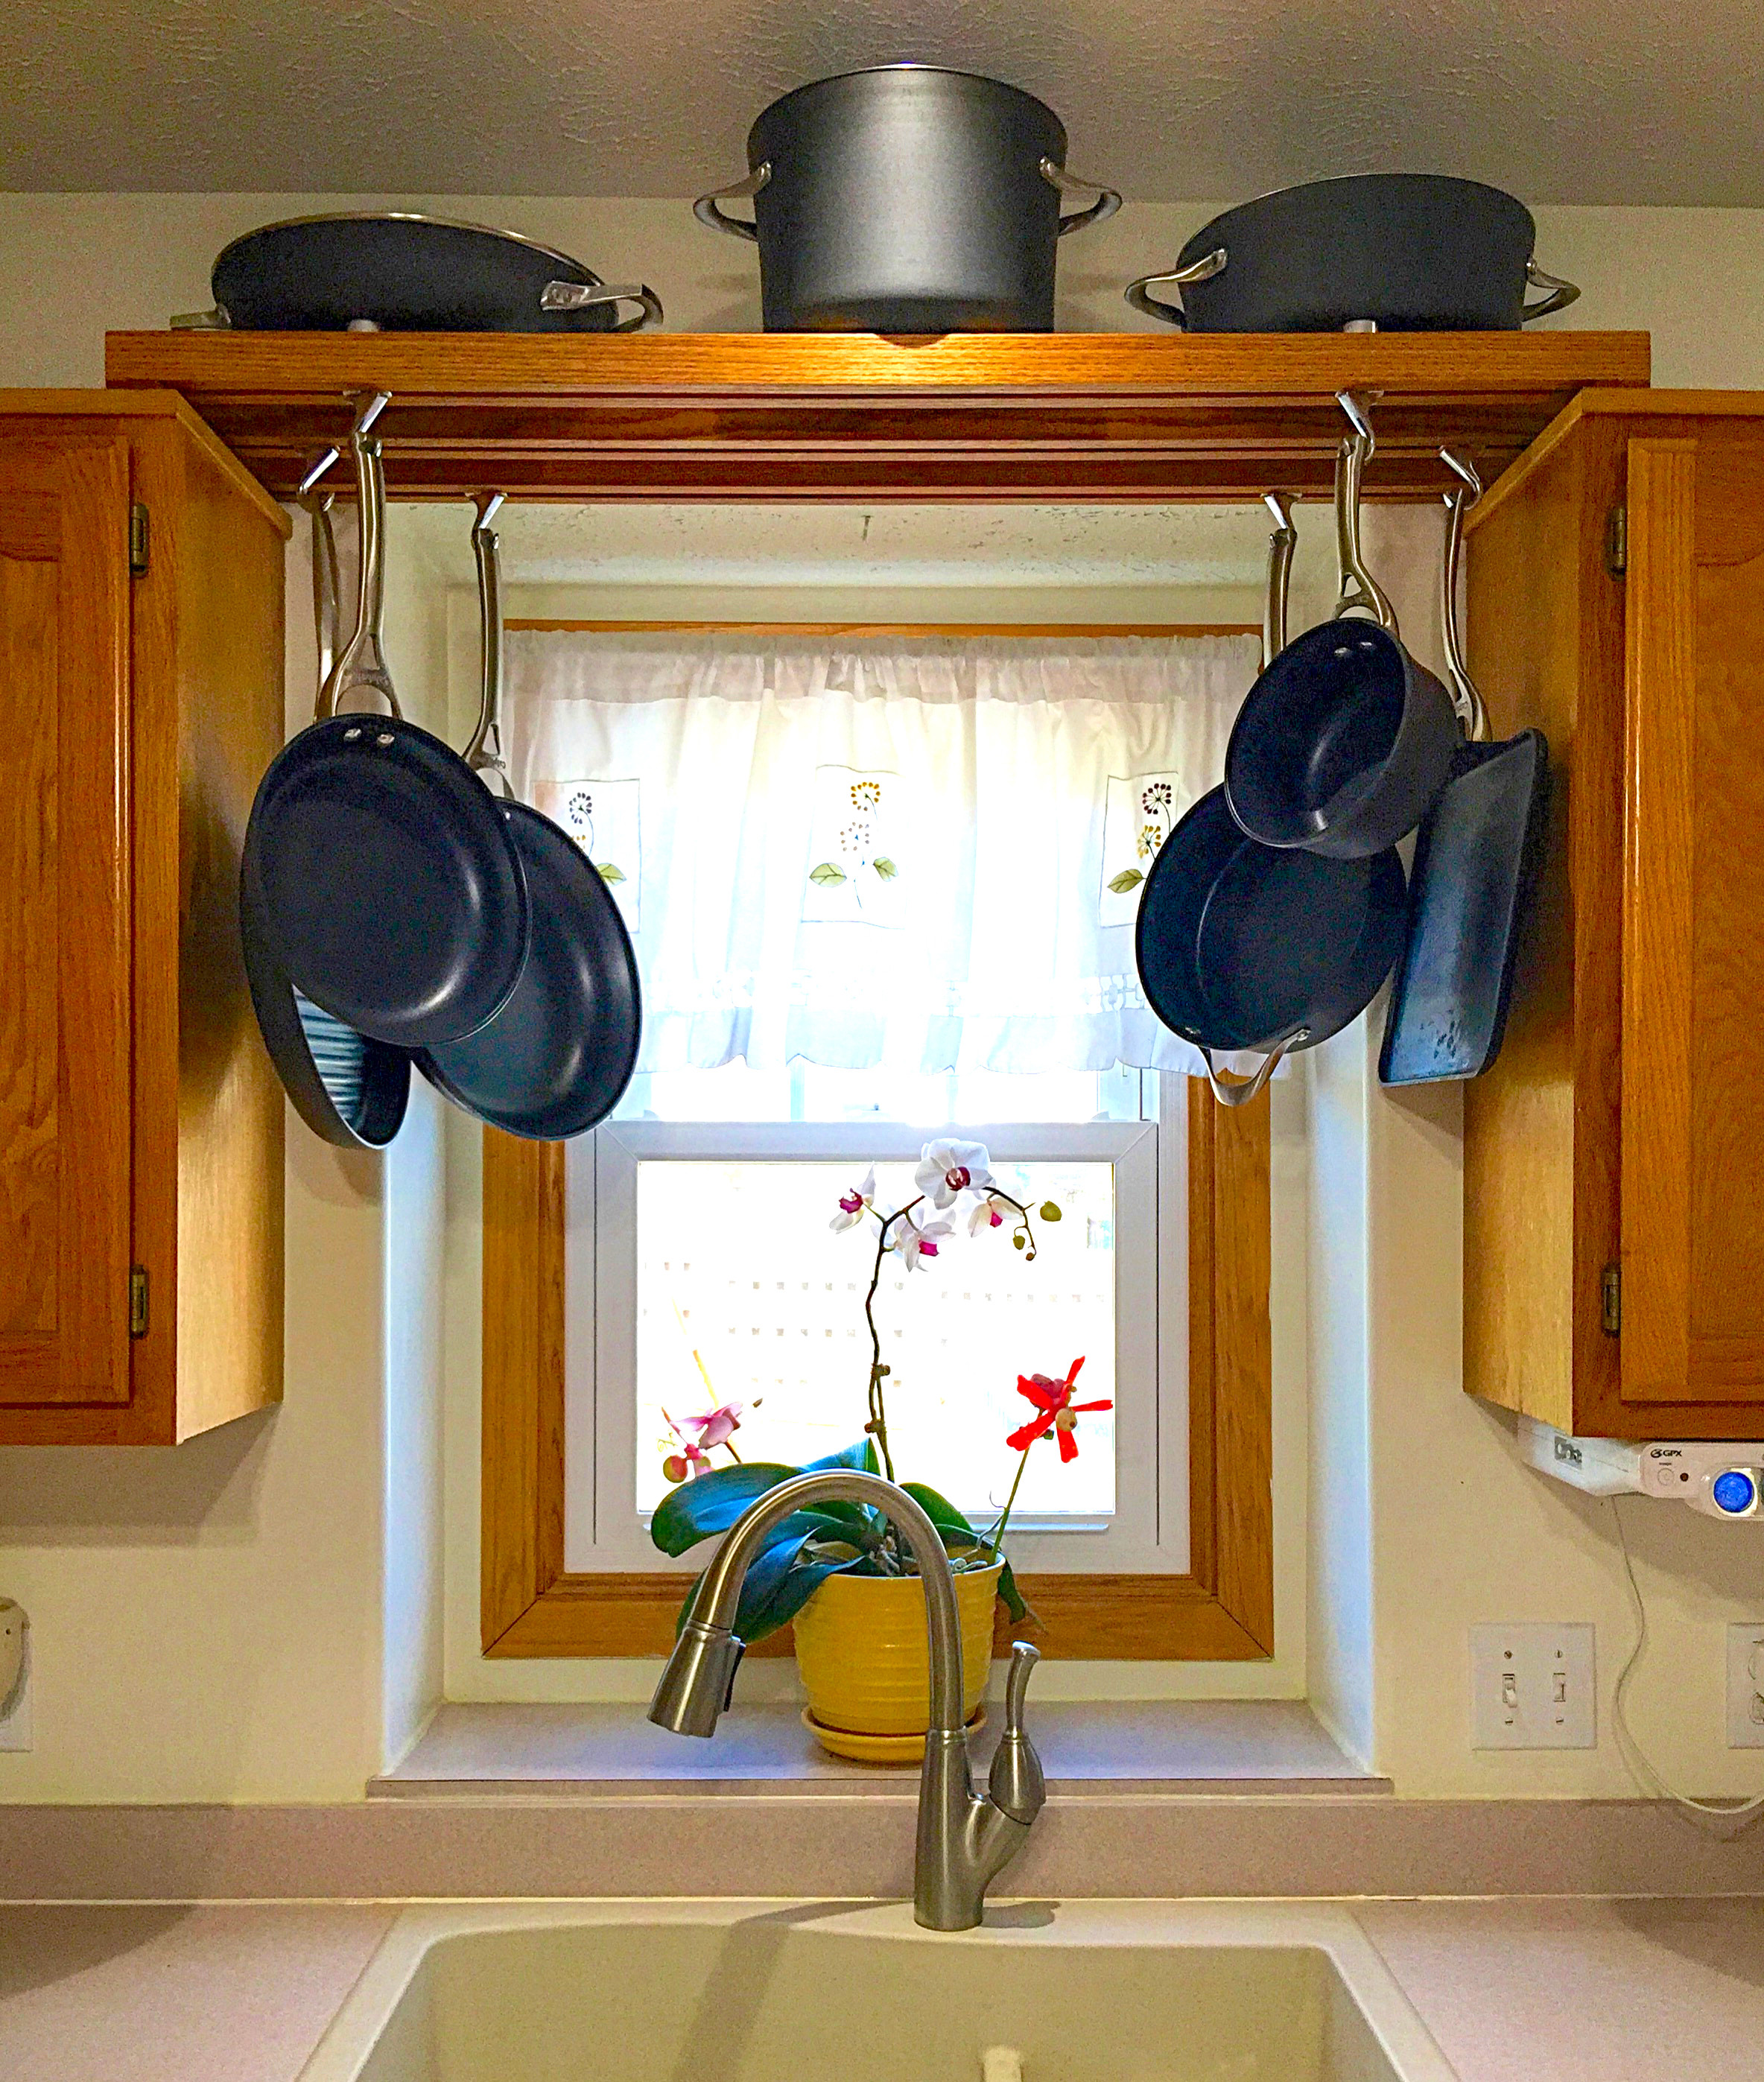 DIY Pots And Pans Rack  Make use of space over the kitchen sink with this DIY pot